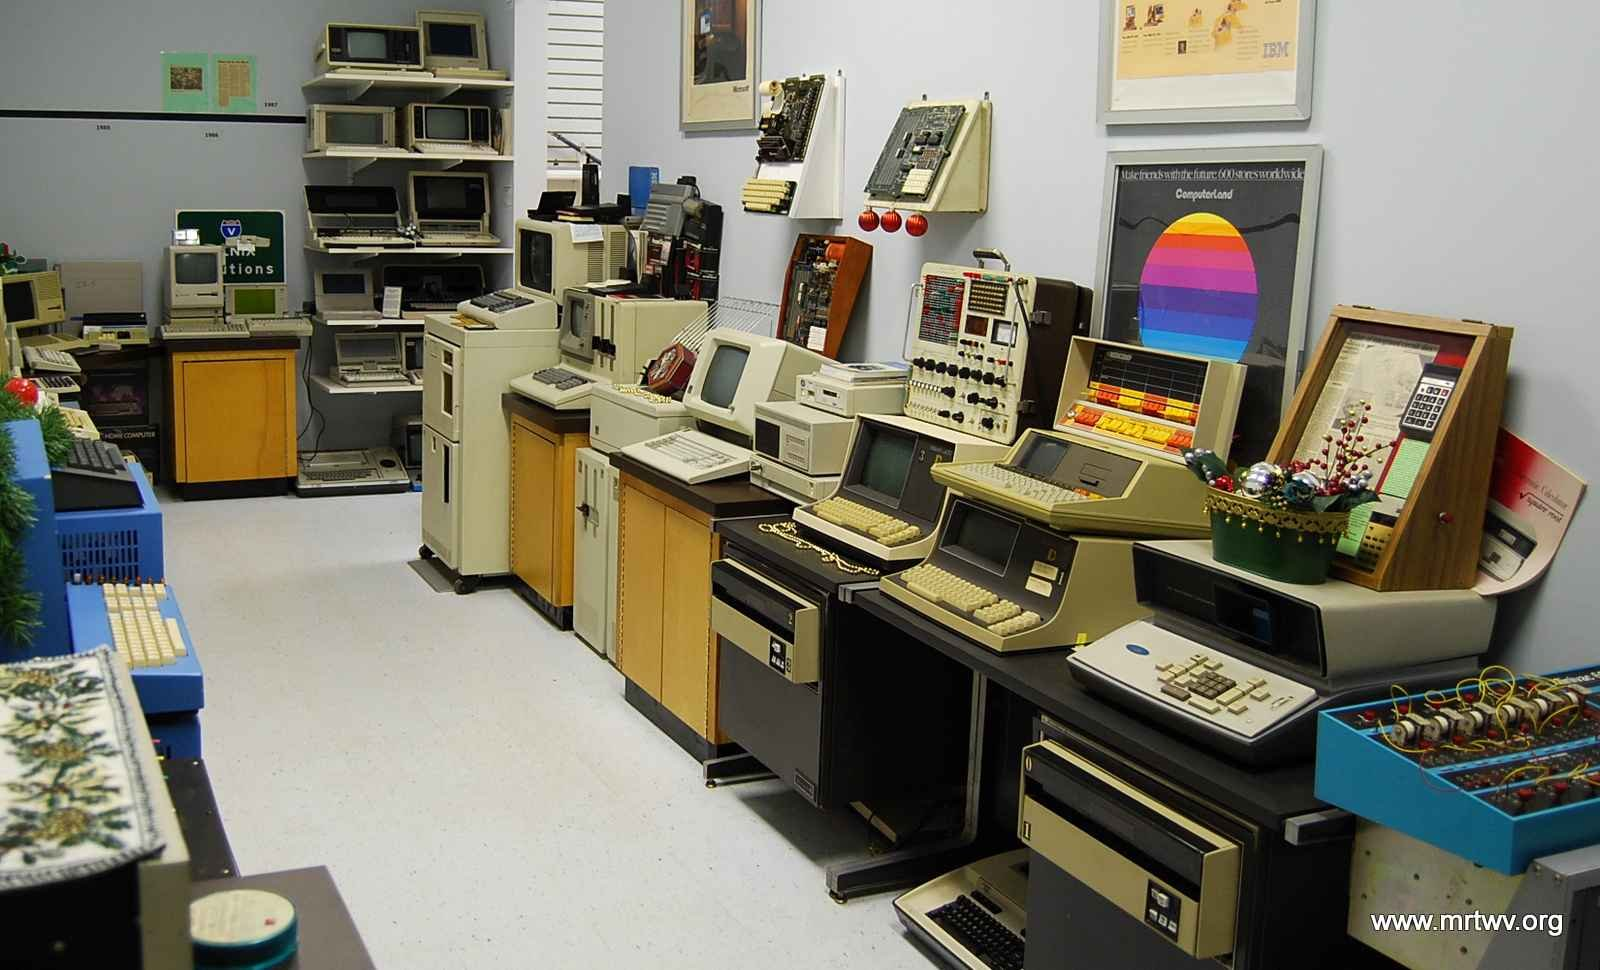 In addition to radios, the museum contains many other pieces of technoogy such as these vintage computers. Image obtained from the Museum of Radio and Technology.